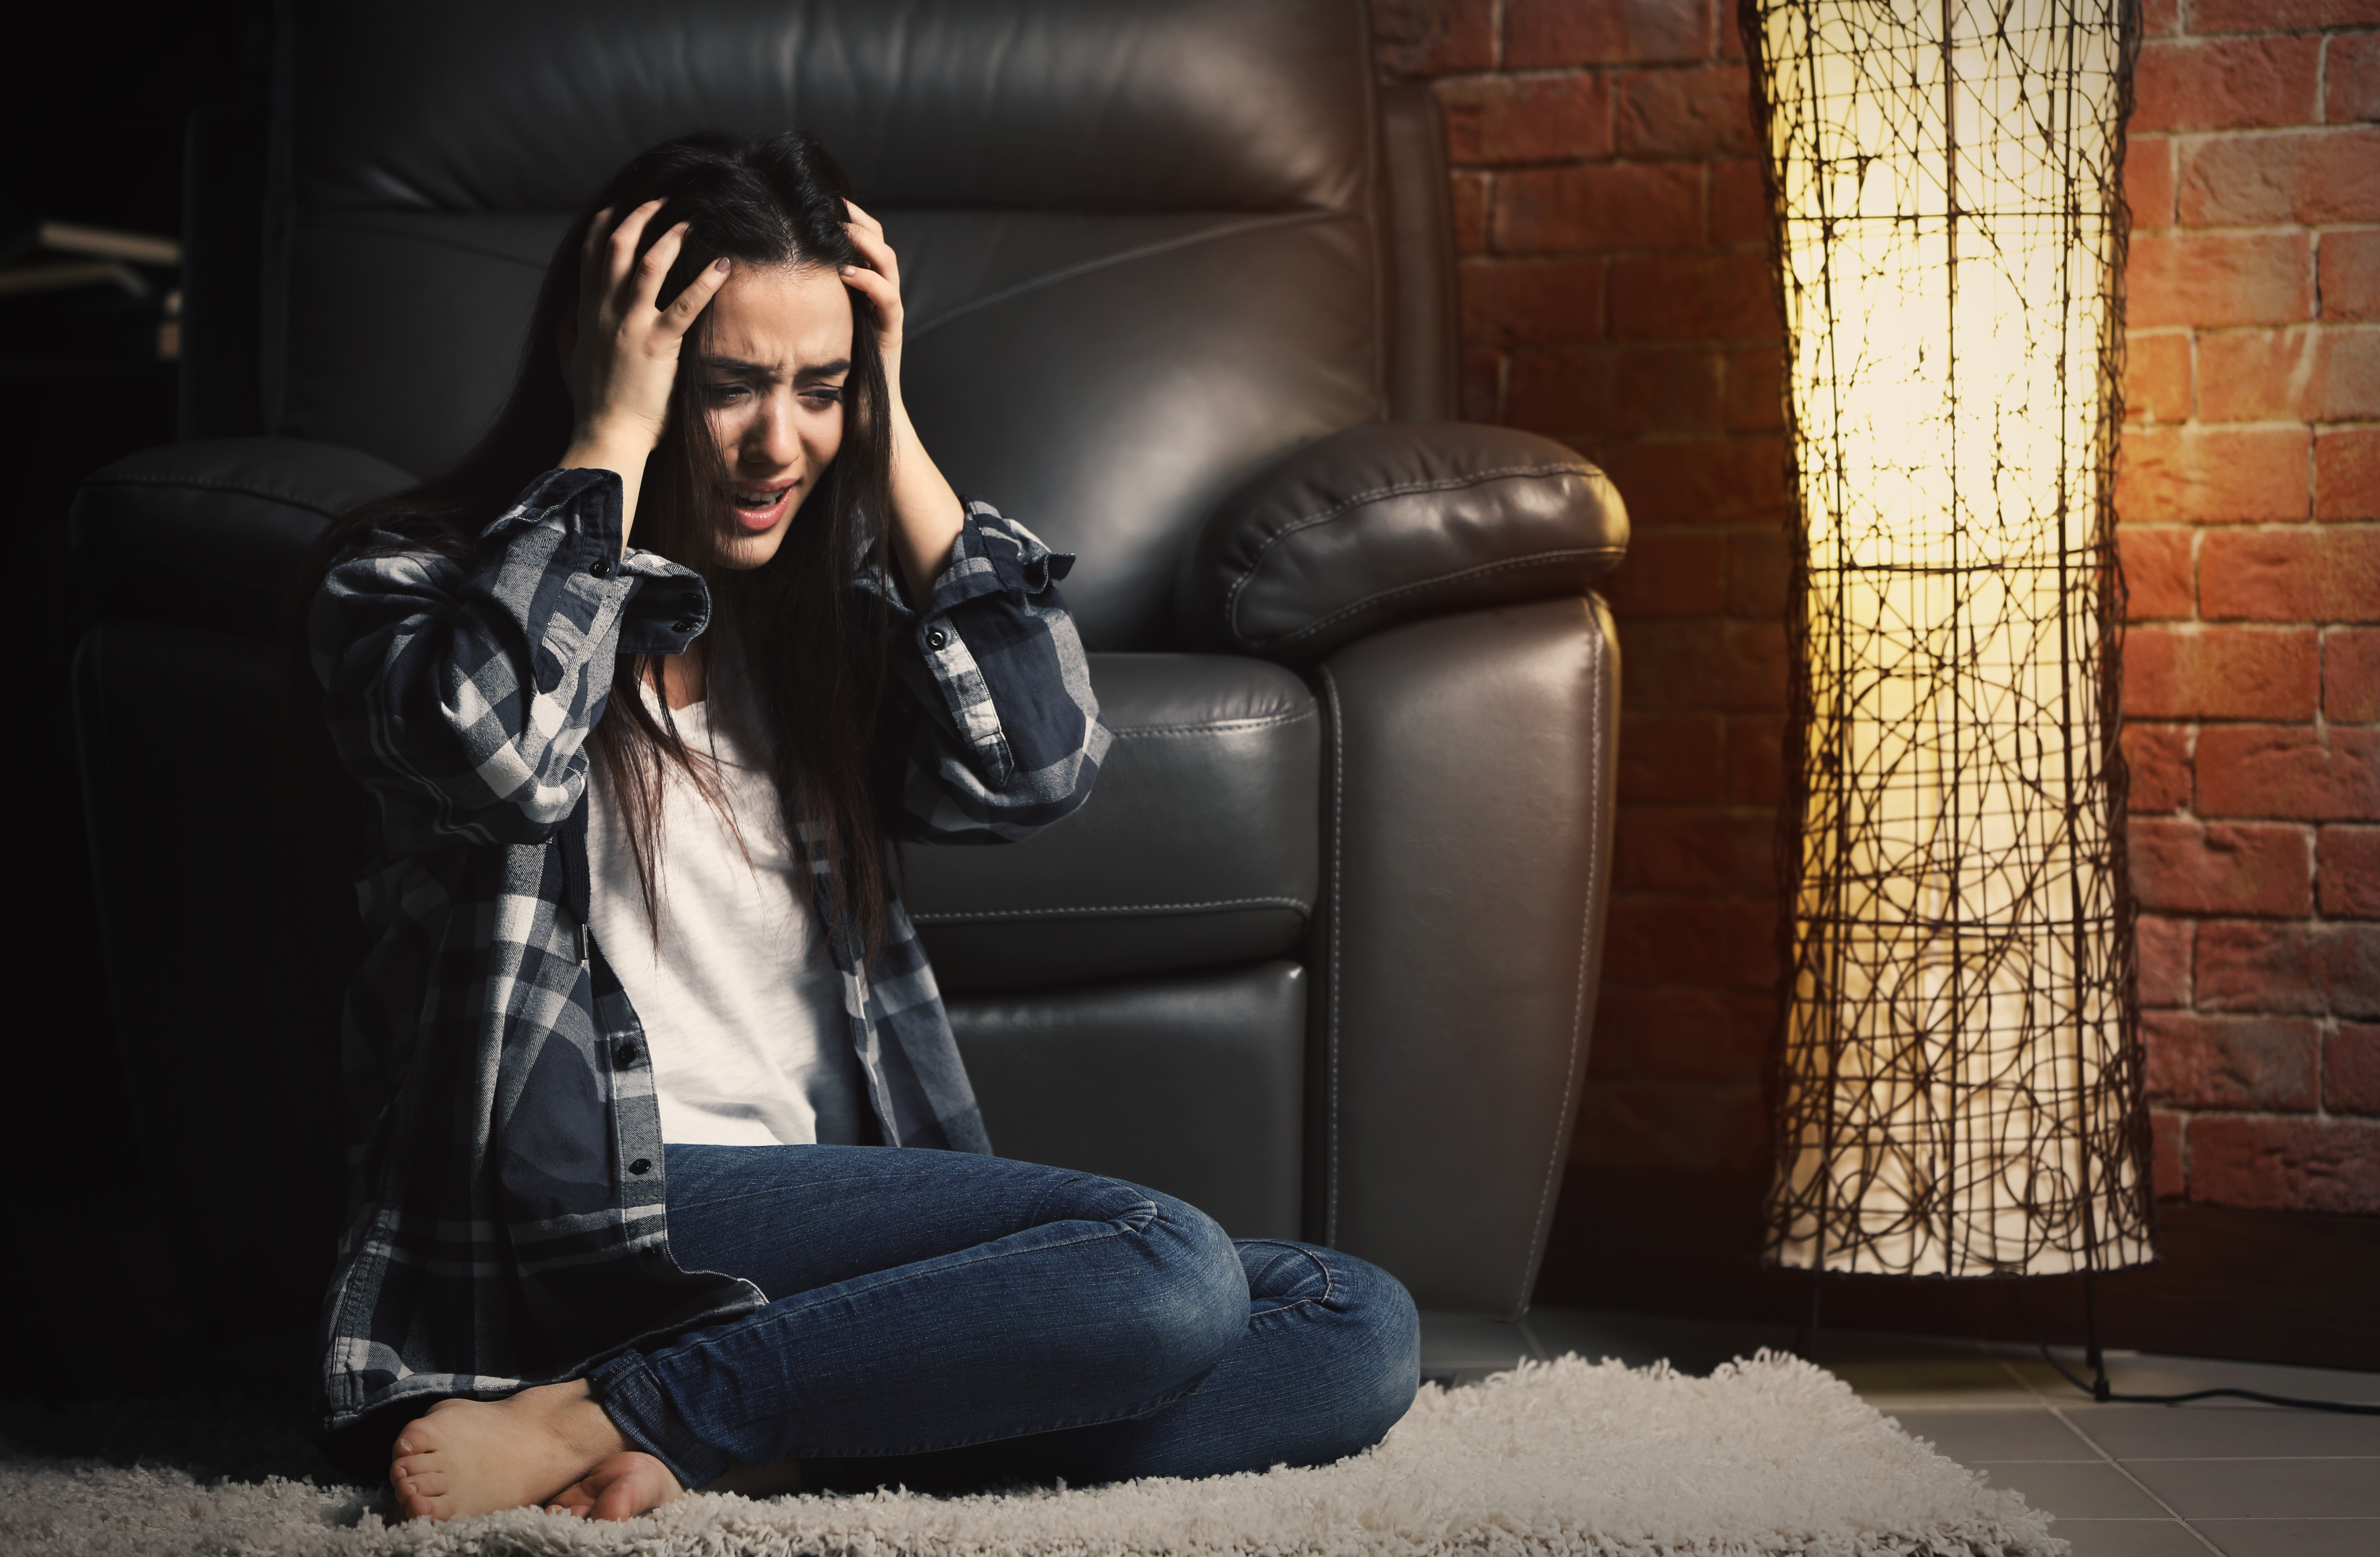 Depressed woman sitting near leather armchair indoors